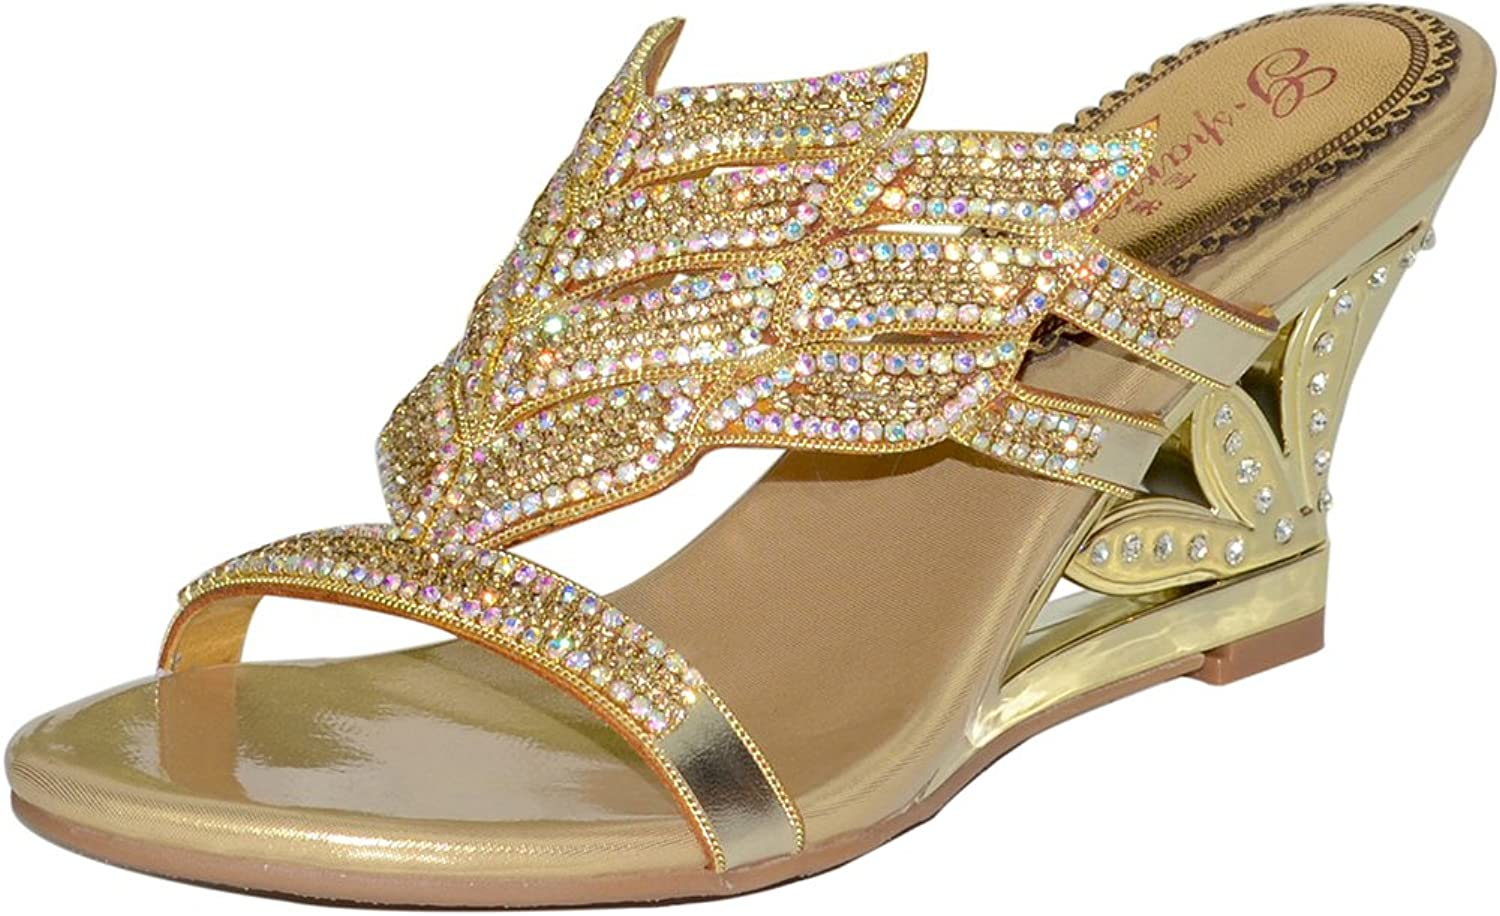 C&C Women's Outdoor Genuine Leather Crystal Sandal Fashion Slippers